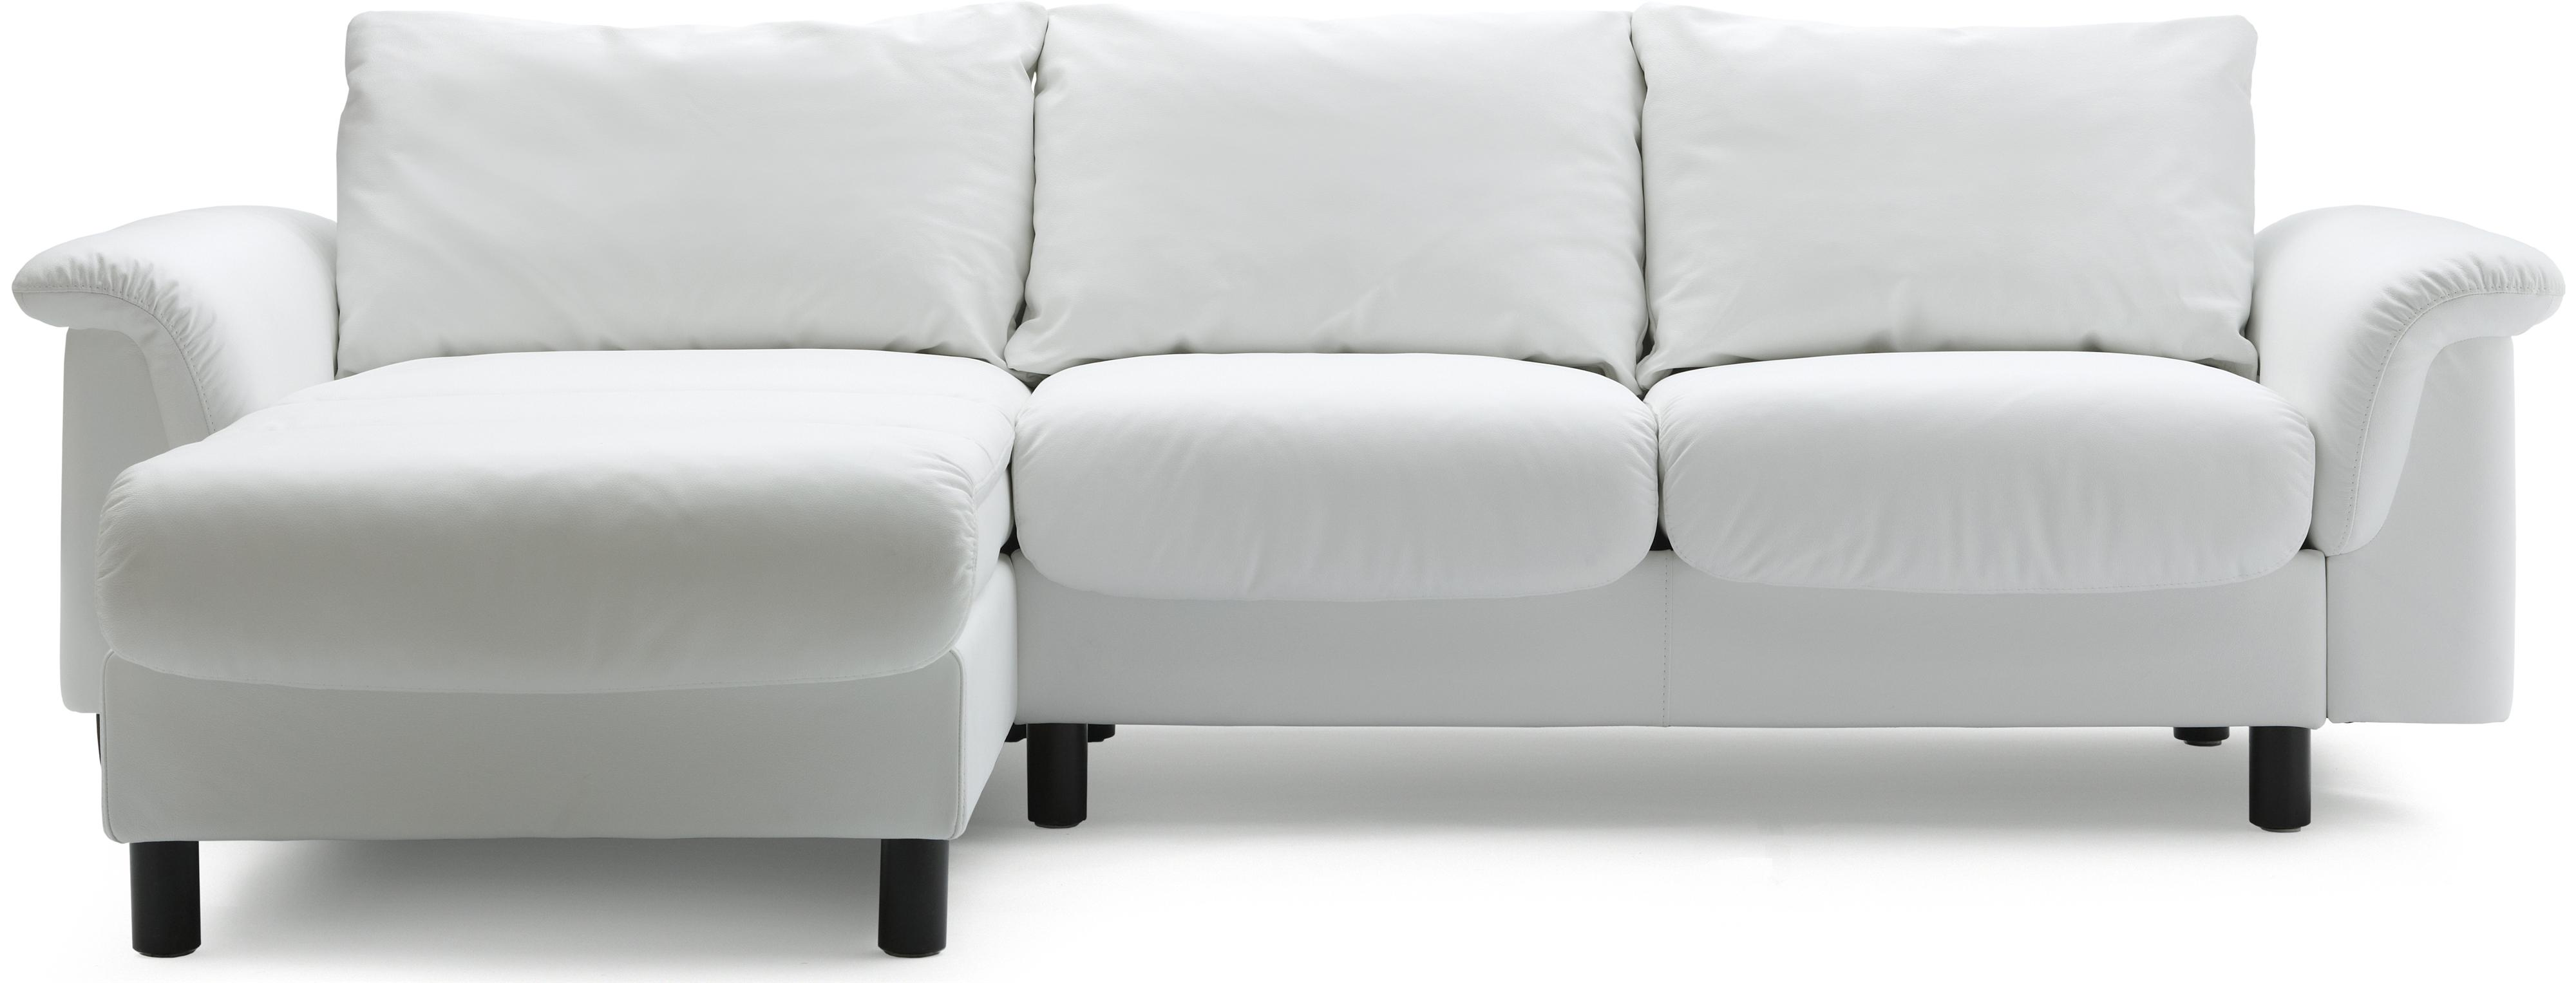 Charmant Stressless E300 2 Seater Loveseat With Long Seat   Item Number: E300 2 Seat